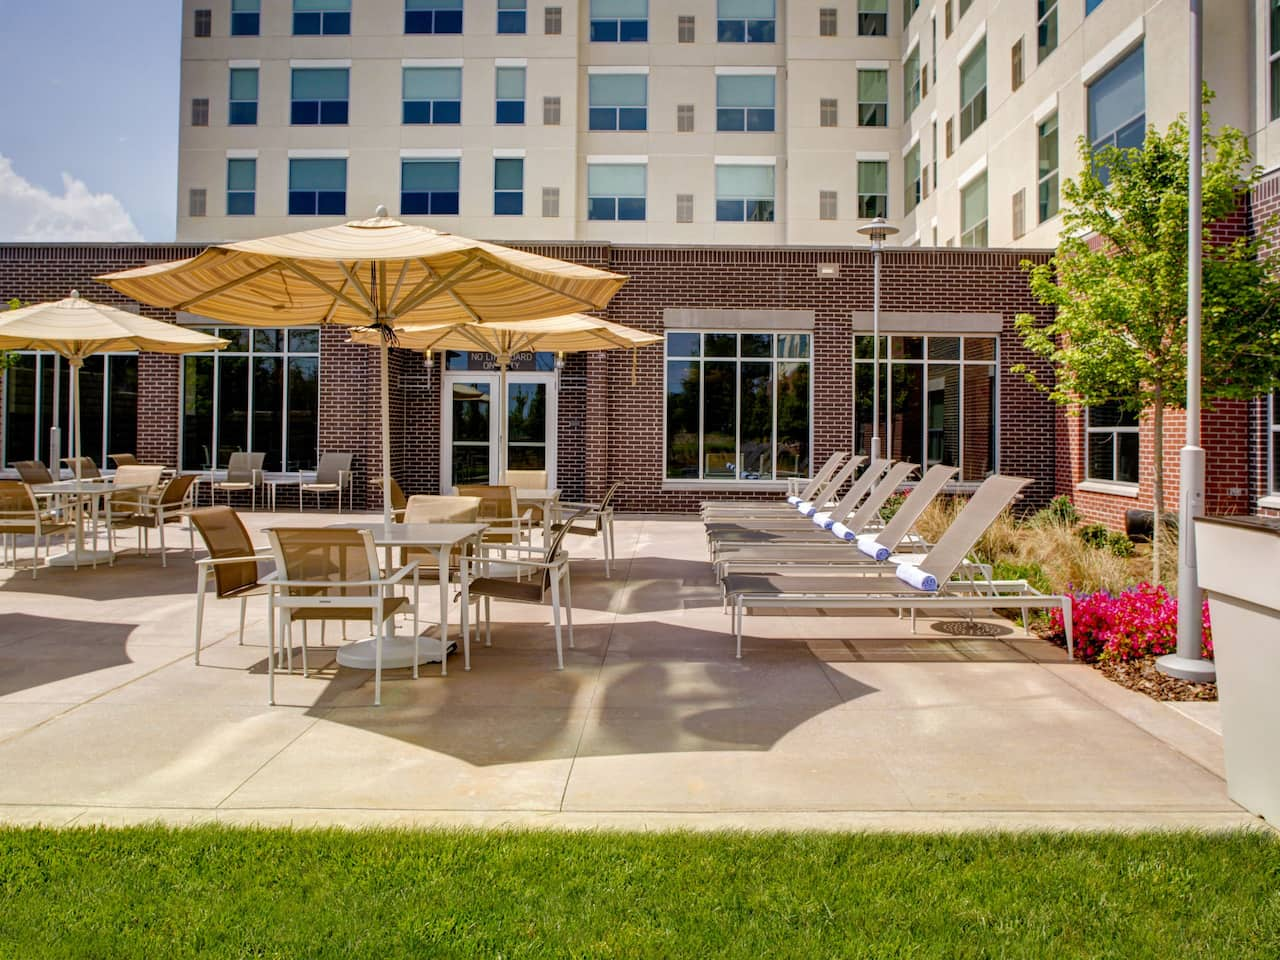 Patio Hyatt House Atlanta/Cobb Galleria